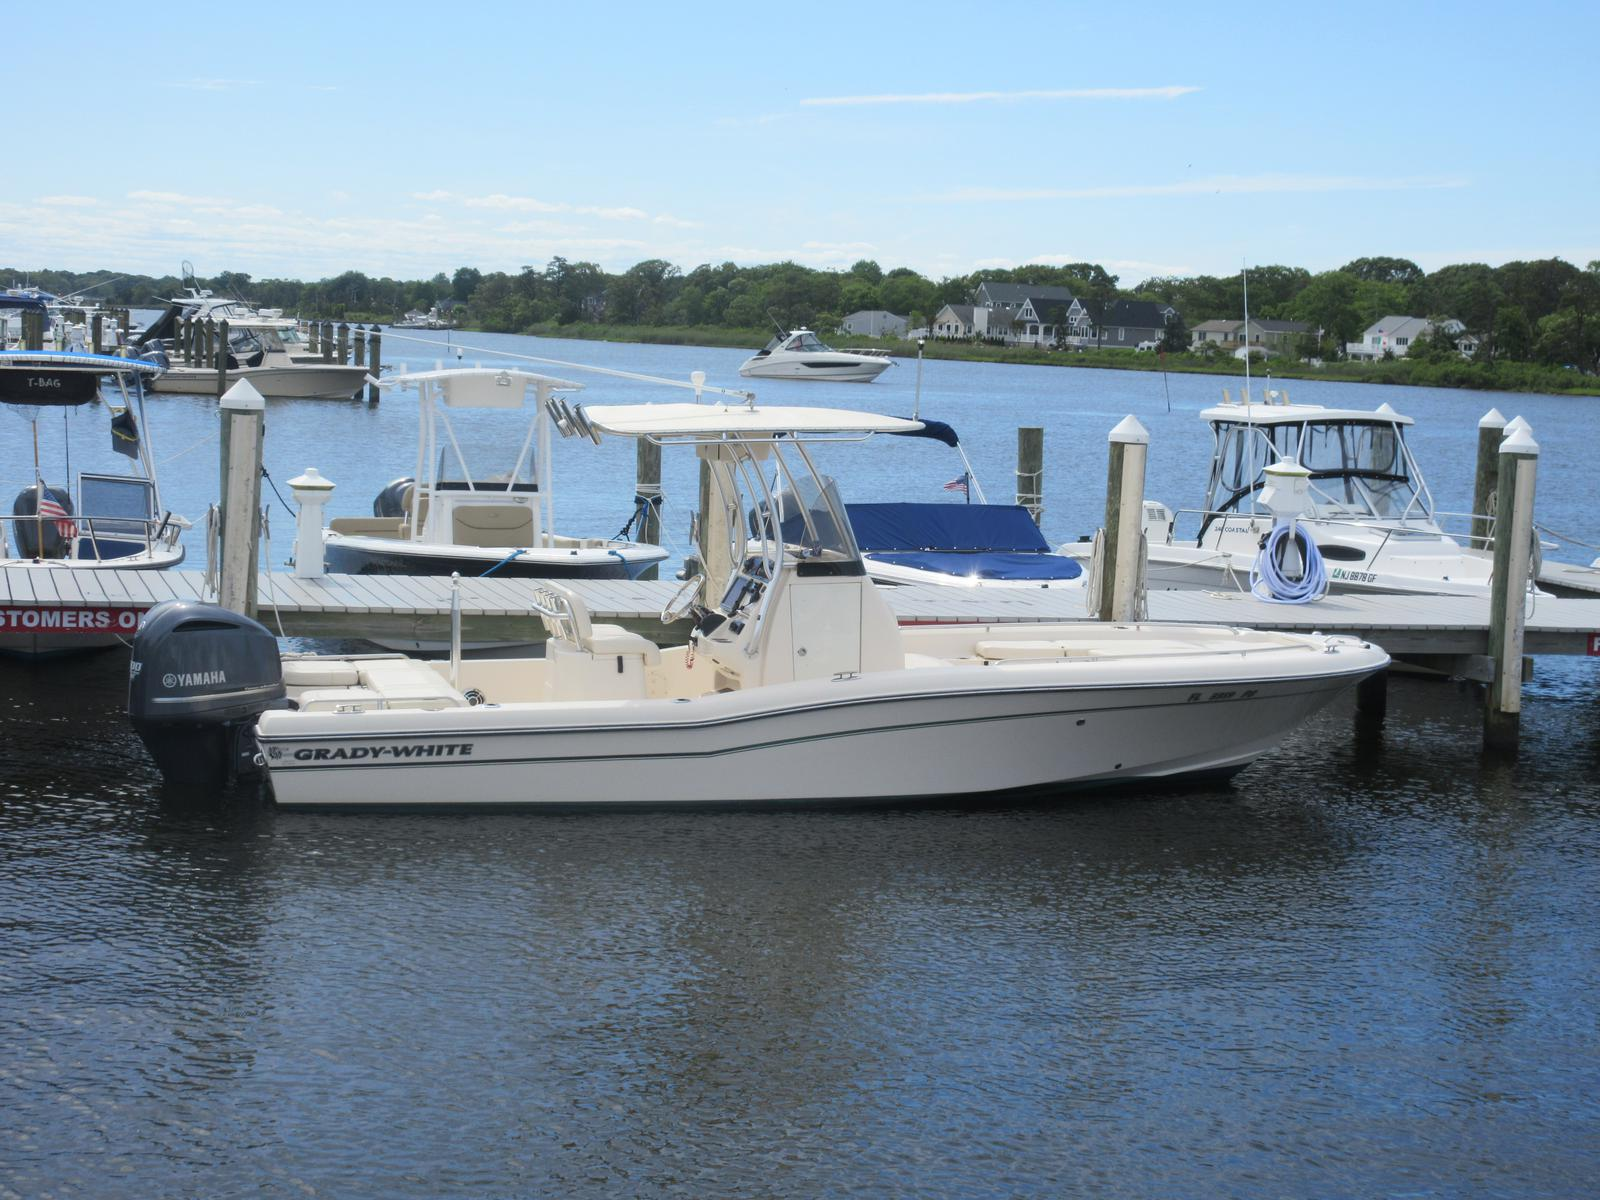 Inventory from Four Winns and Grady-White Comstock Yacht Sales